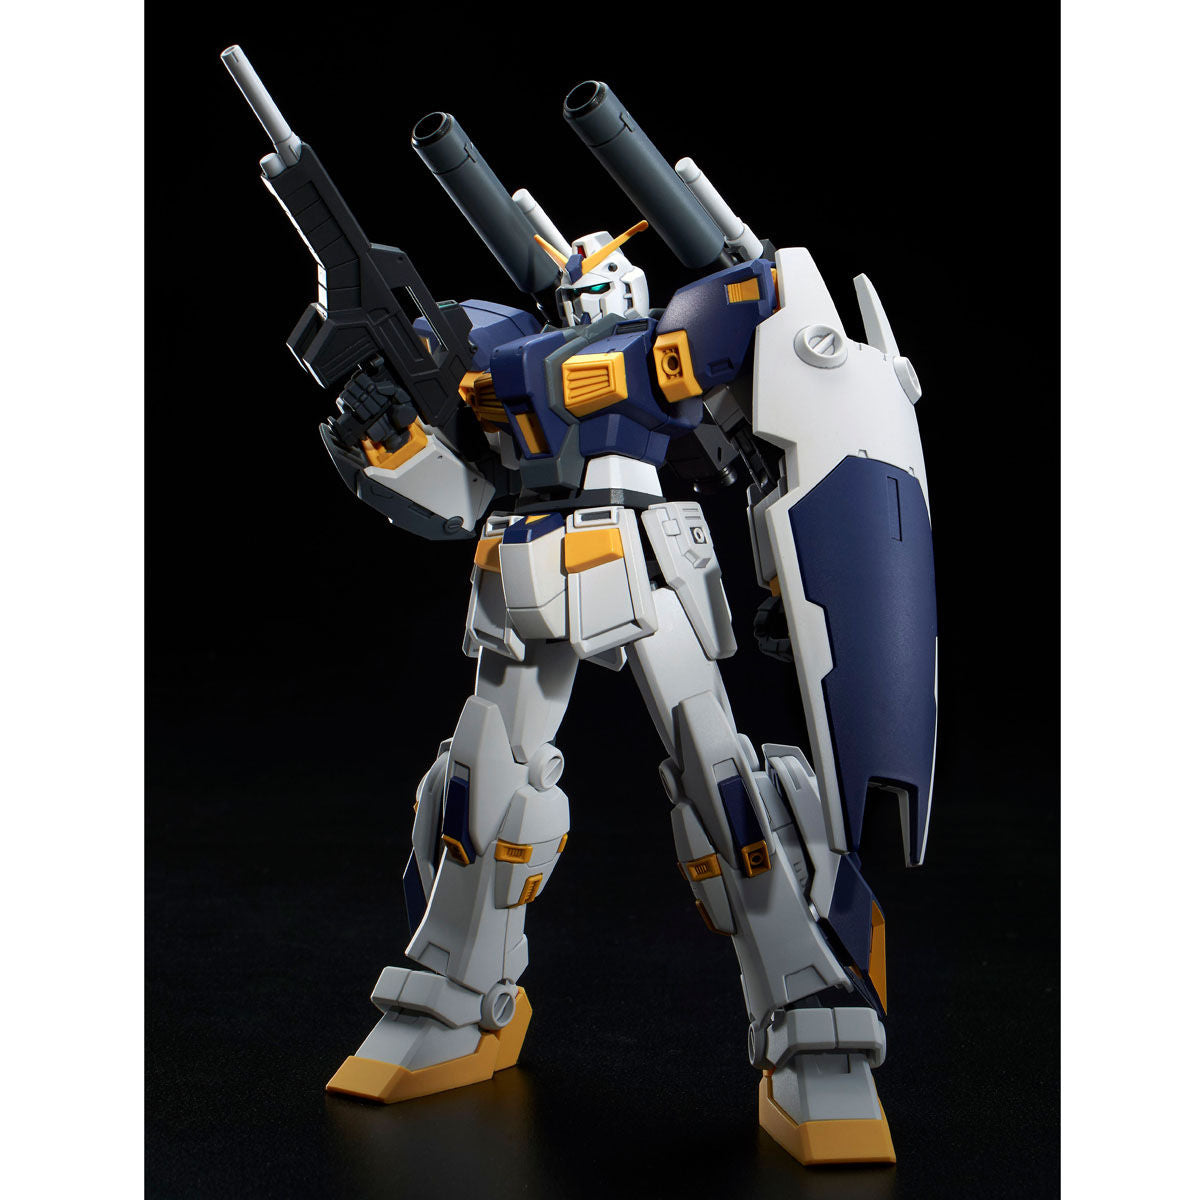 P-Bandai: HGUC 1/144 RX-78-6 Mudrock Gundam [End of January 2020]